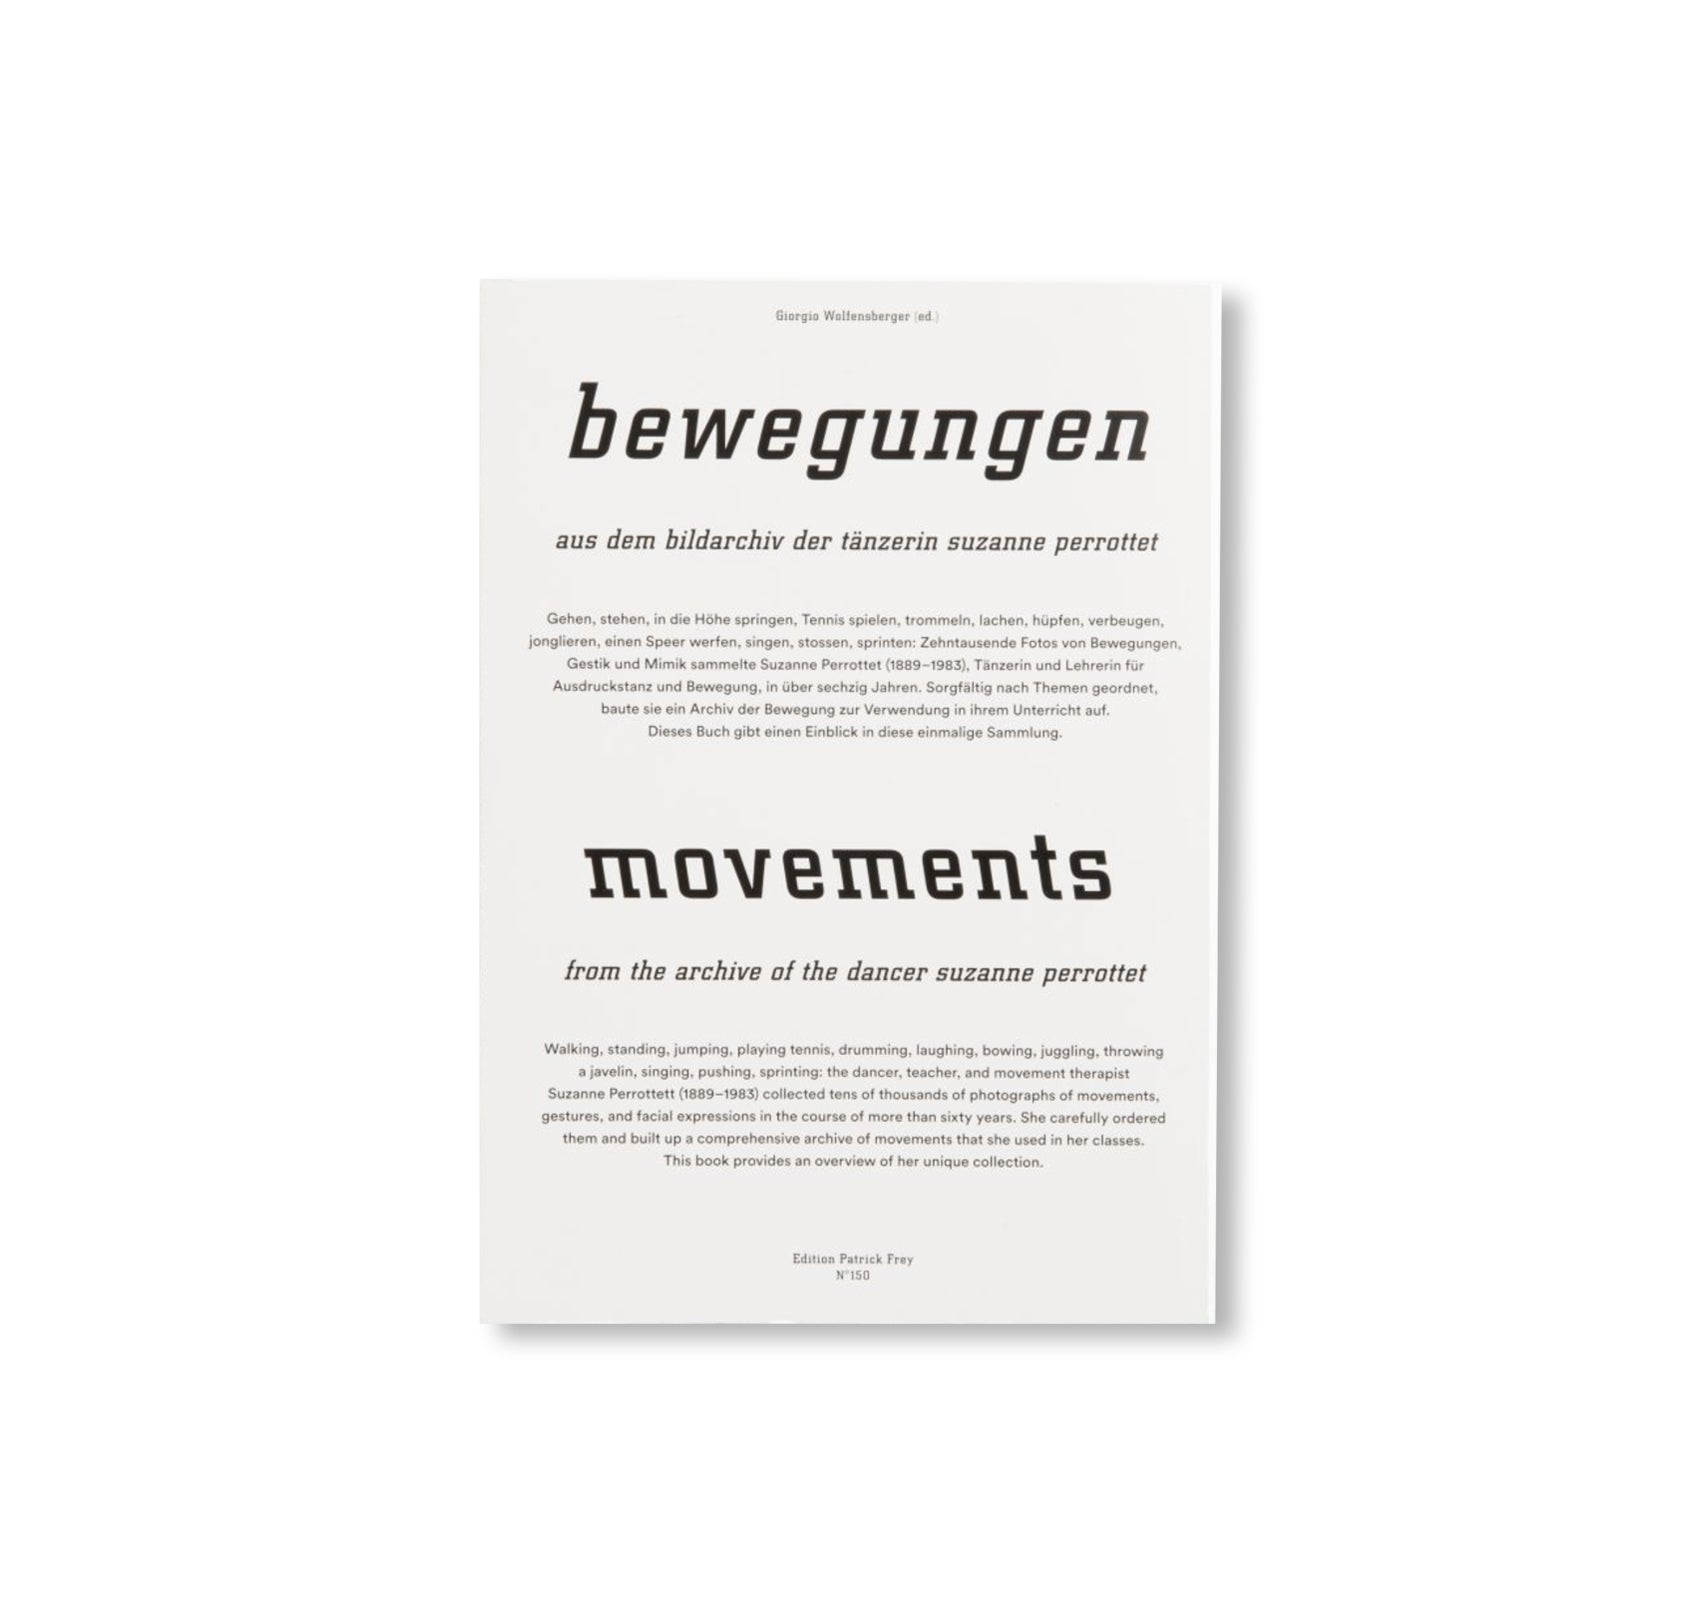 BEWEGUNGEN / MOVEMENTS by Suzanne Perrottet